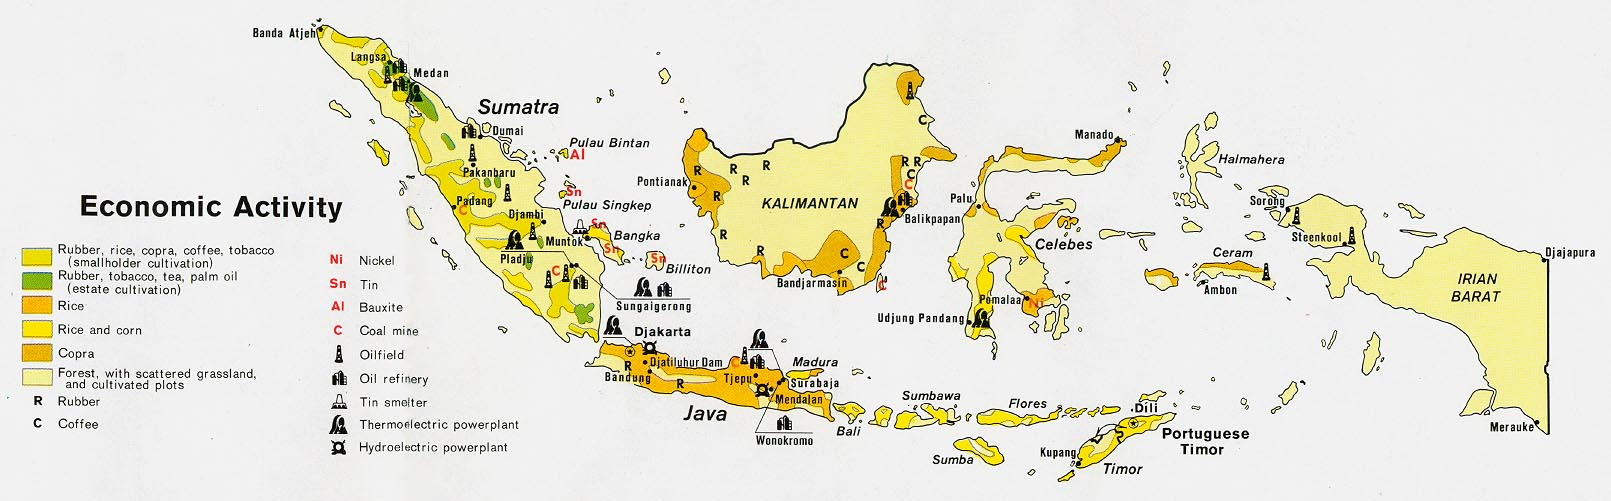 Climate Map Of Indonesia Indonesia - Economic Activity